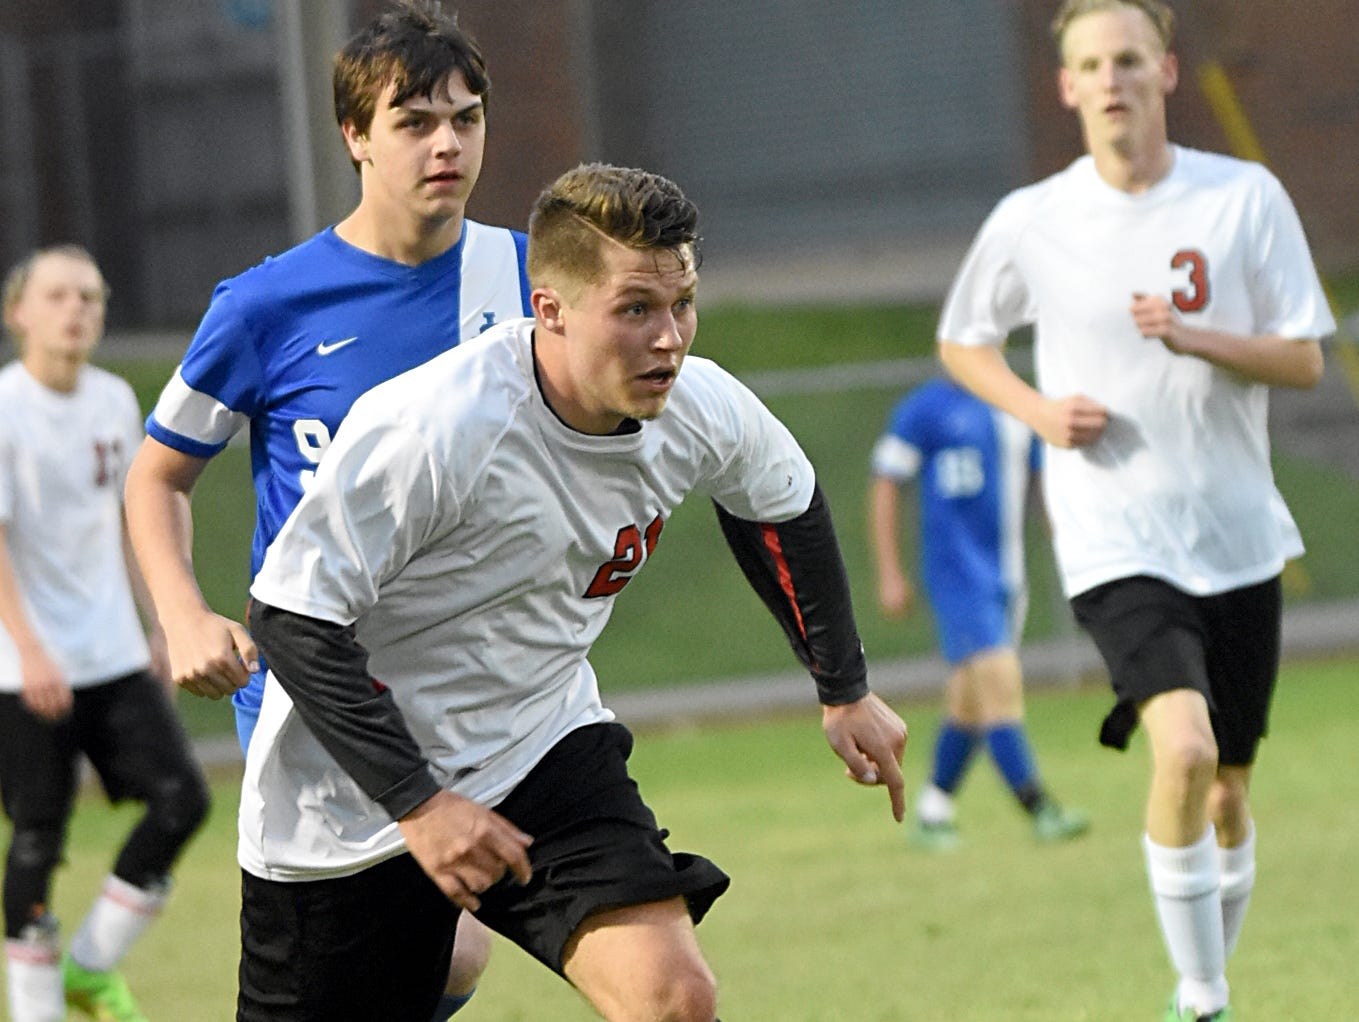 Westmoreland High senior defender Griffin Garrison dribbles upfield during the second half as Jackson County senior Cason Kinney pursues and as Eagle junior teammate Jesse Hovatter (3) looks on.